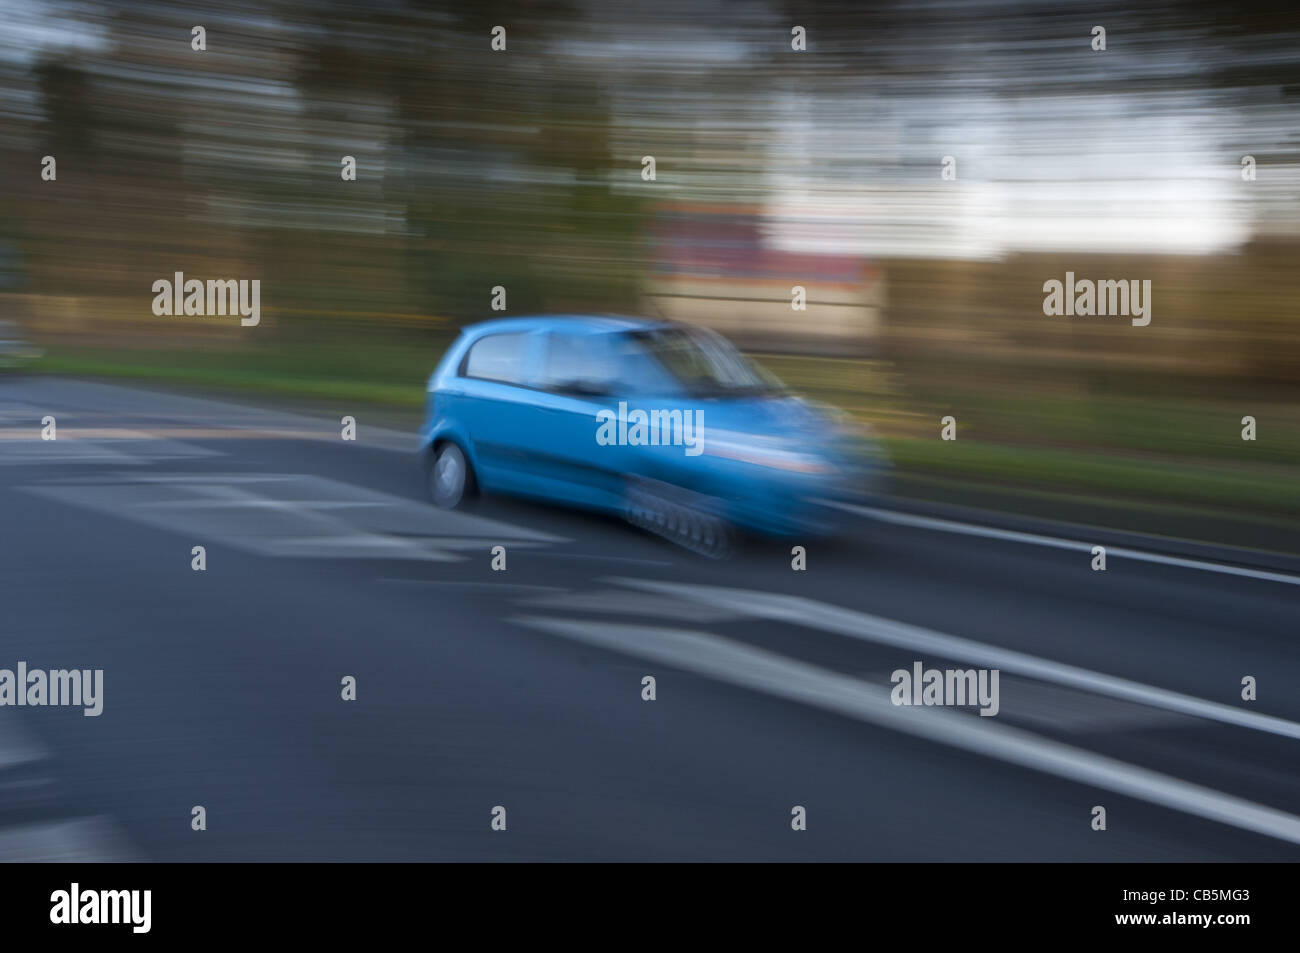 Traffic cars on country road with motion blur - Stock Image